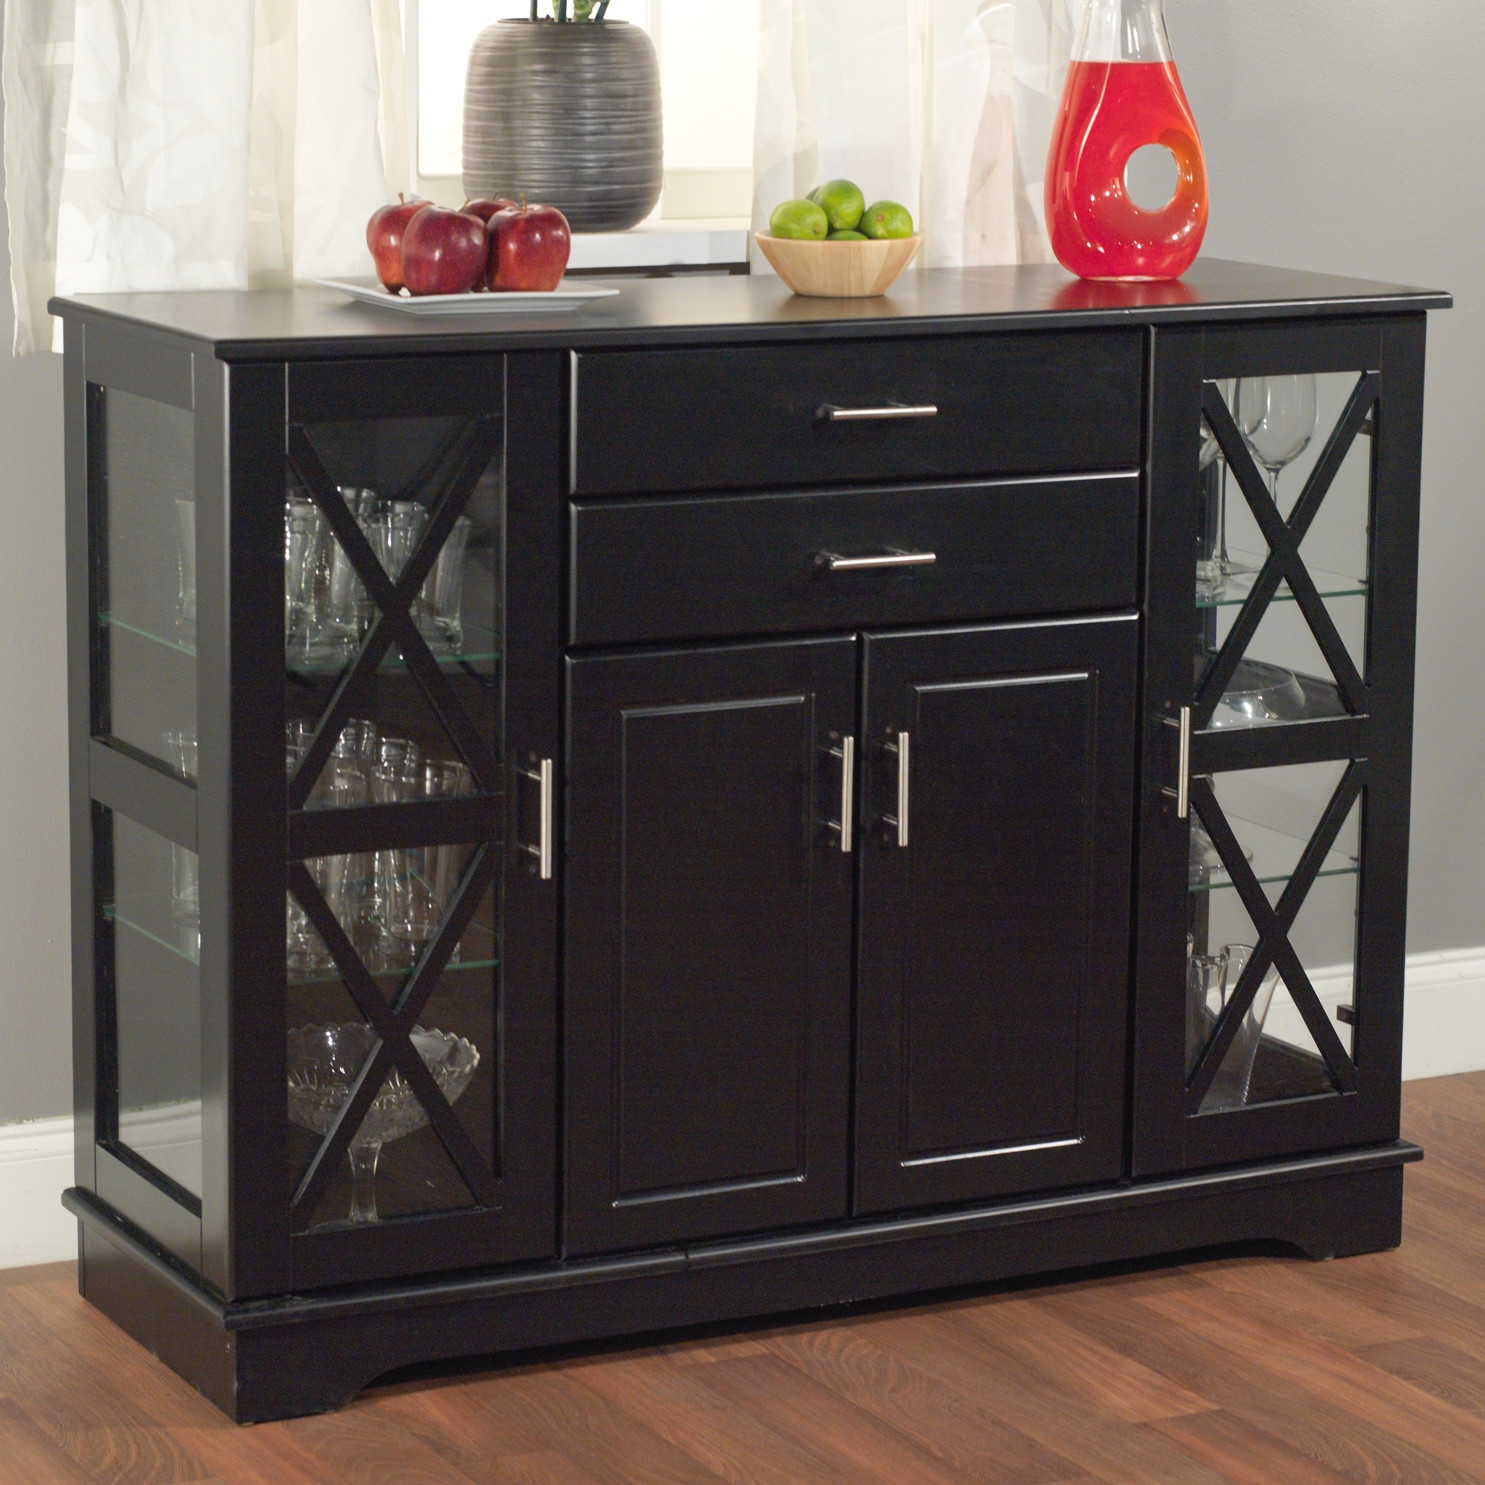 Dining Room Furniture Sideboard Black Wood Buffet Dining Room Sideboard With Glass Doors